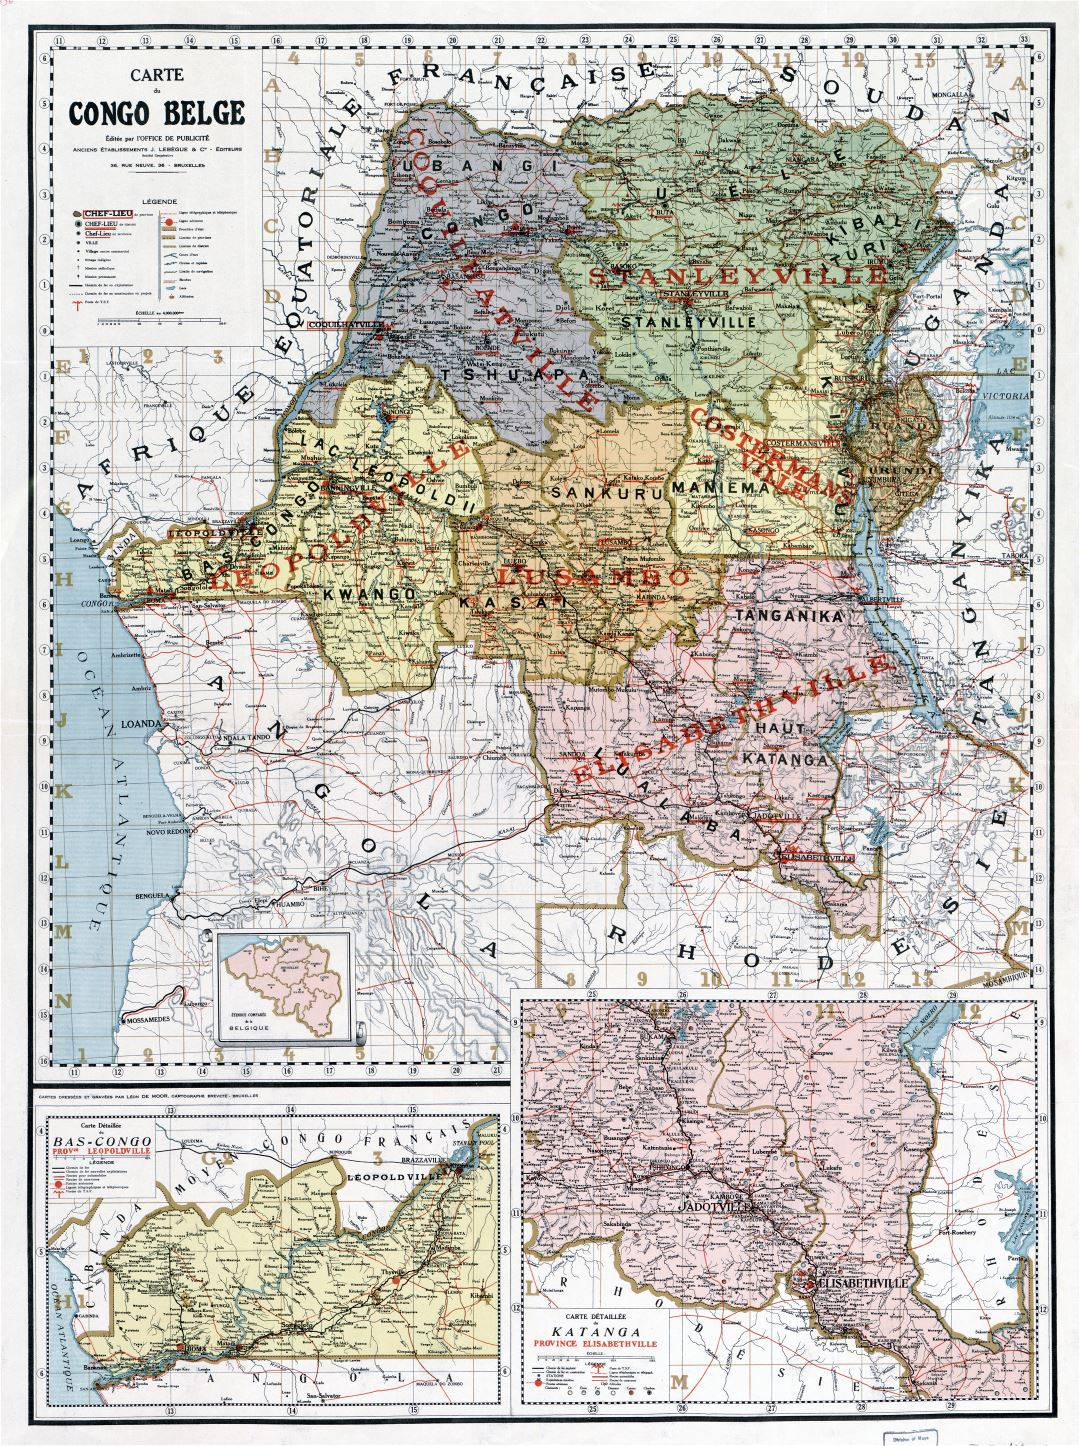 Large scale old political and administrative map of Congo Democratic Republic with other marks - 1896